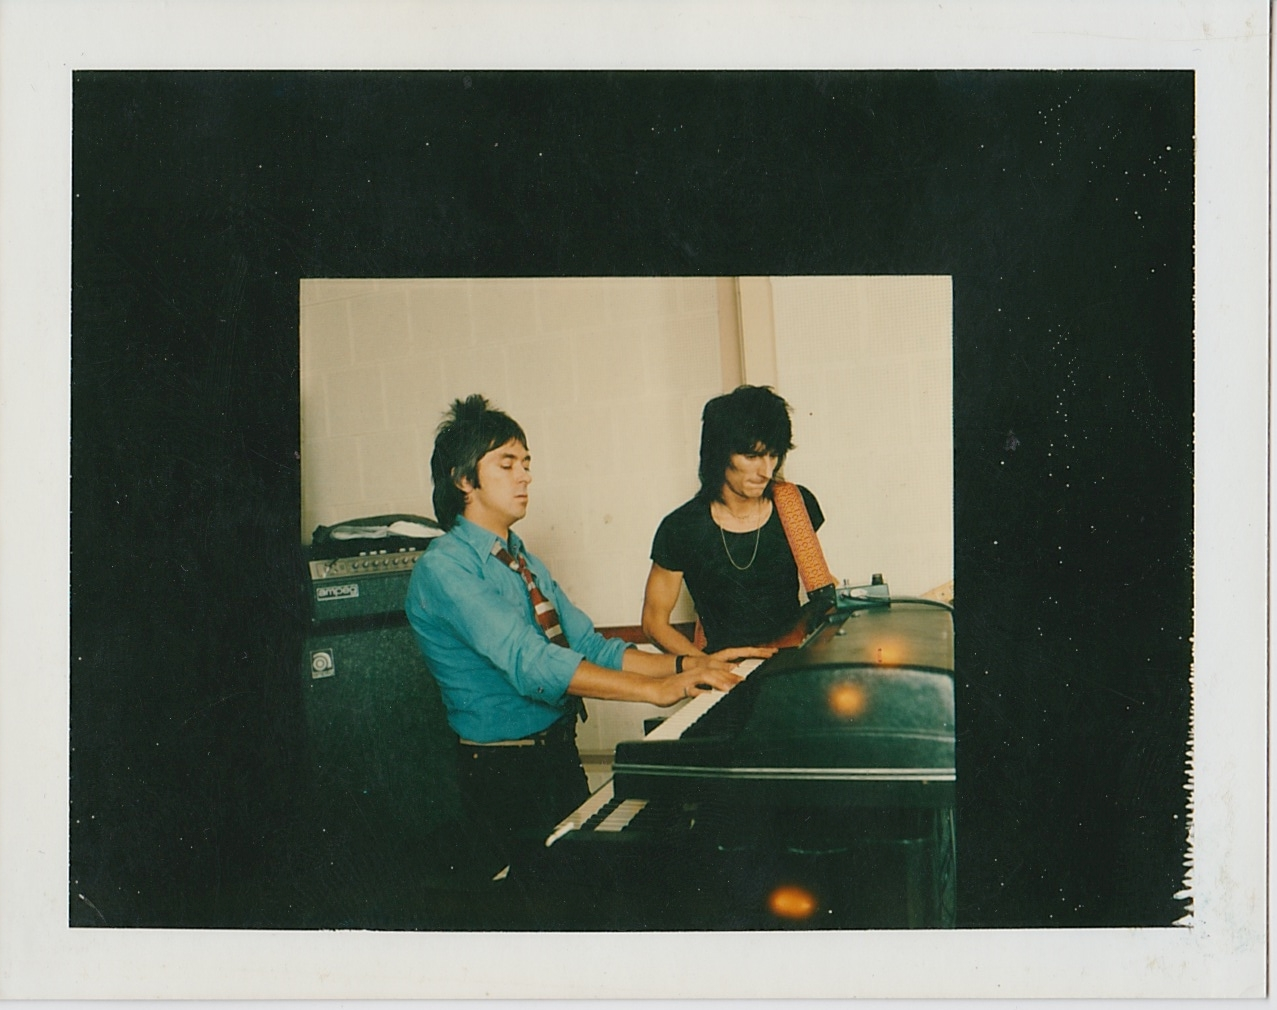 Mac and Ronnie Wood polaroid 2of2.jpg